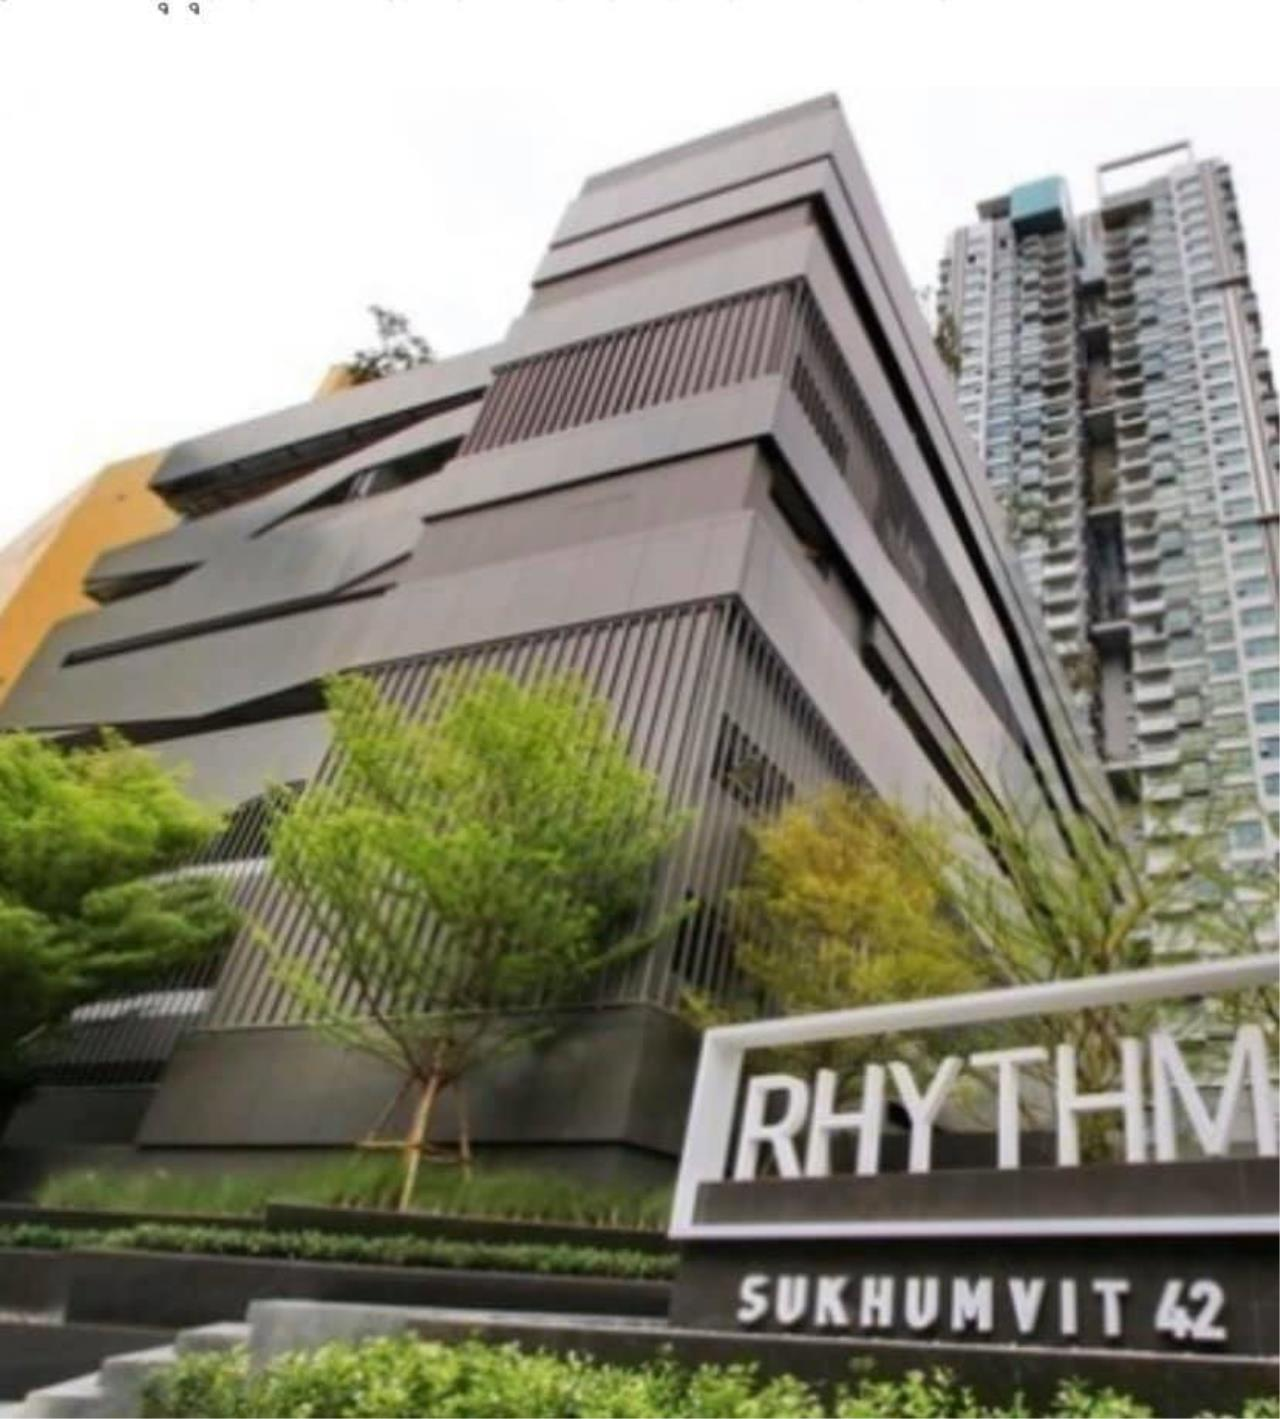 Su Agent Co.,Ltd Agency's KP159 Rhythm Sukhumvit  42 type 1 Bedrooms size 78.23 sq.m for sale 16.7 MB 1